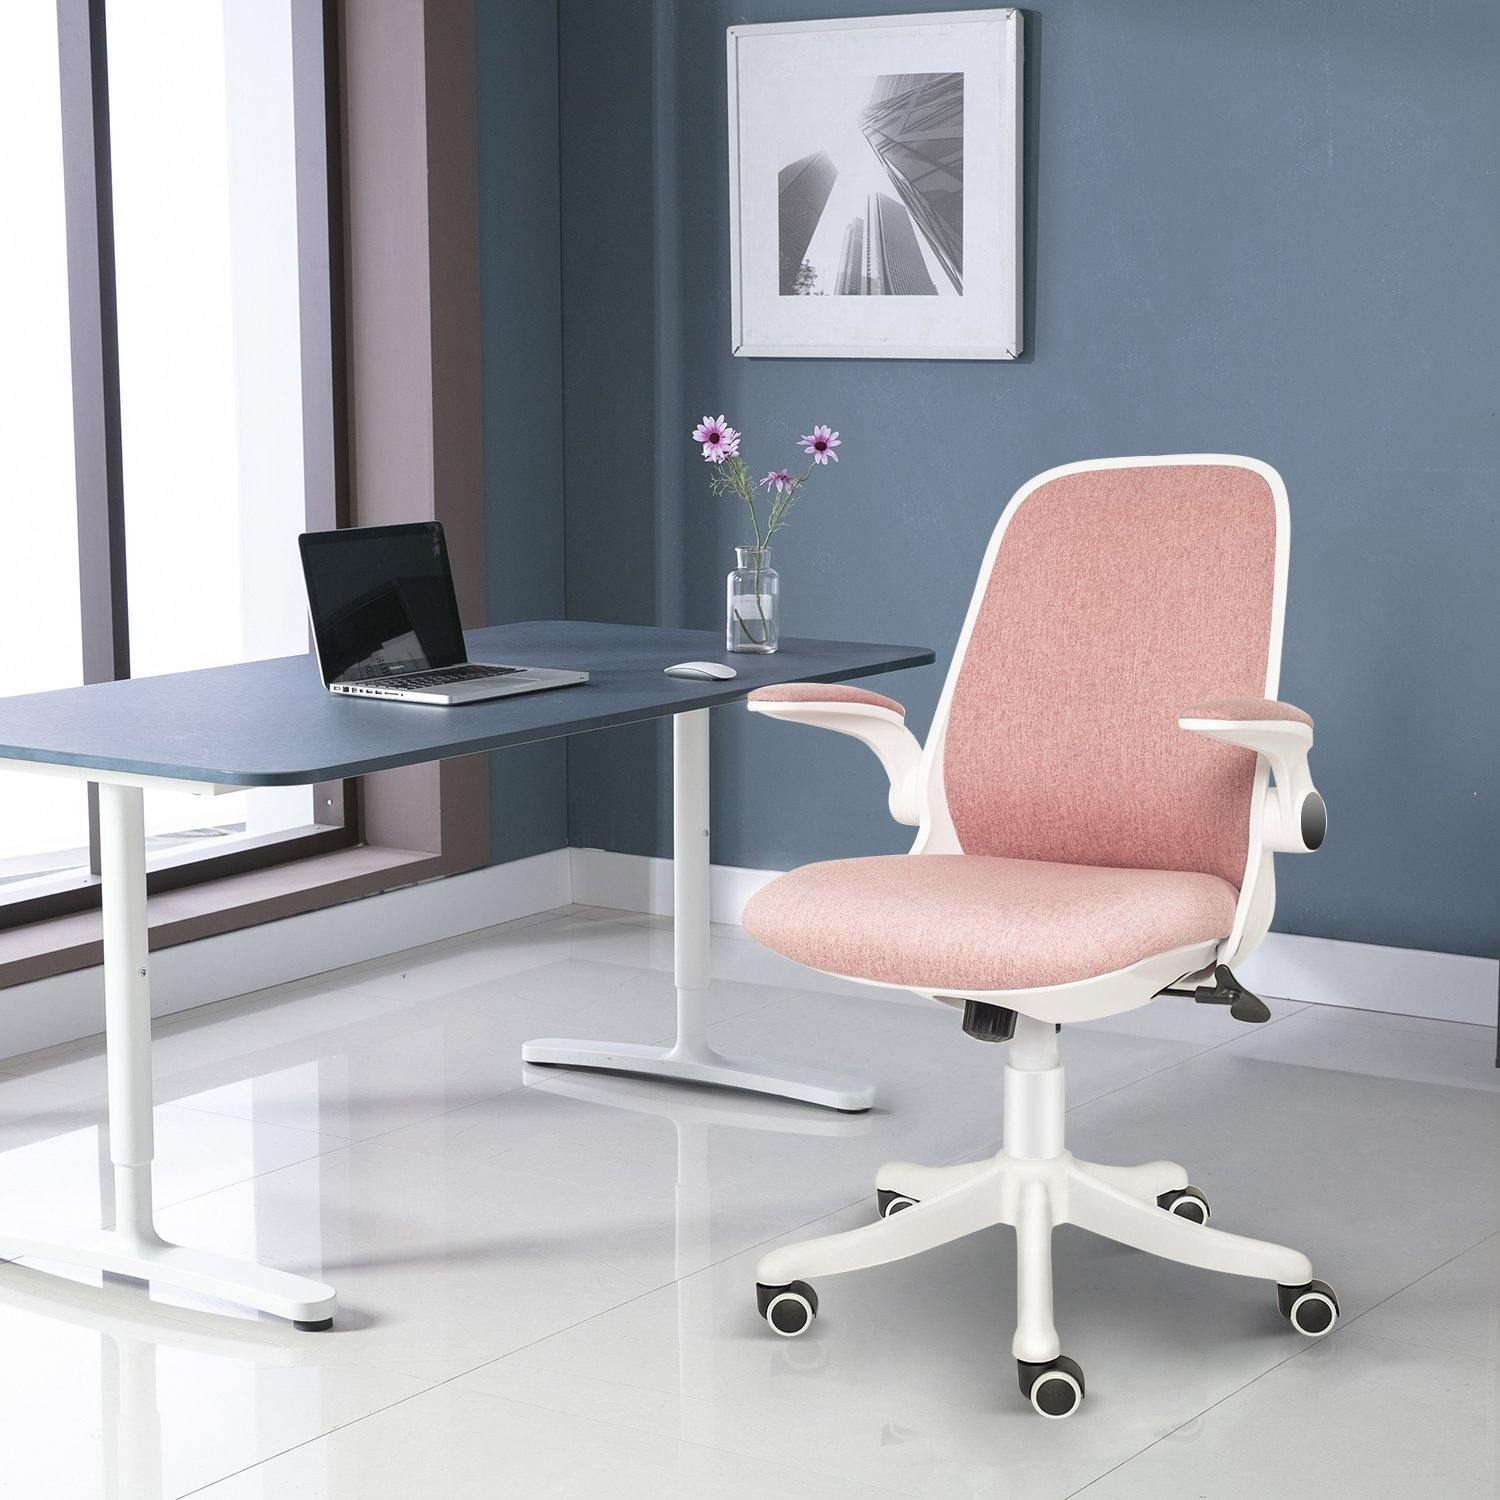 ELECWISH Adjustable Ergonomic Lumbar office Chair